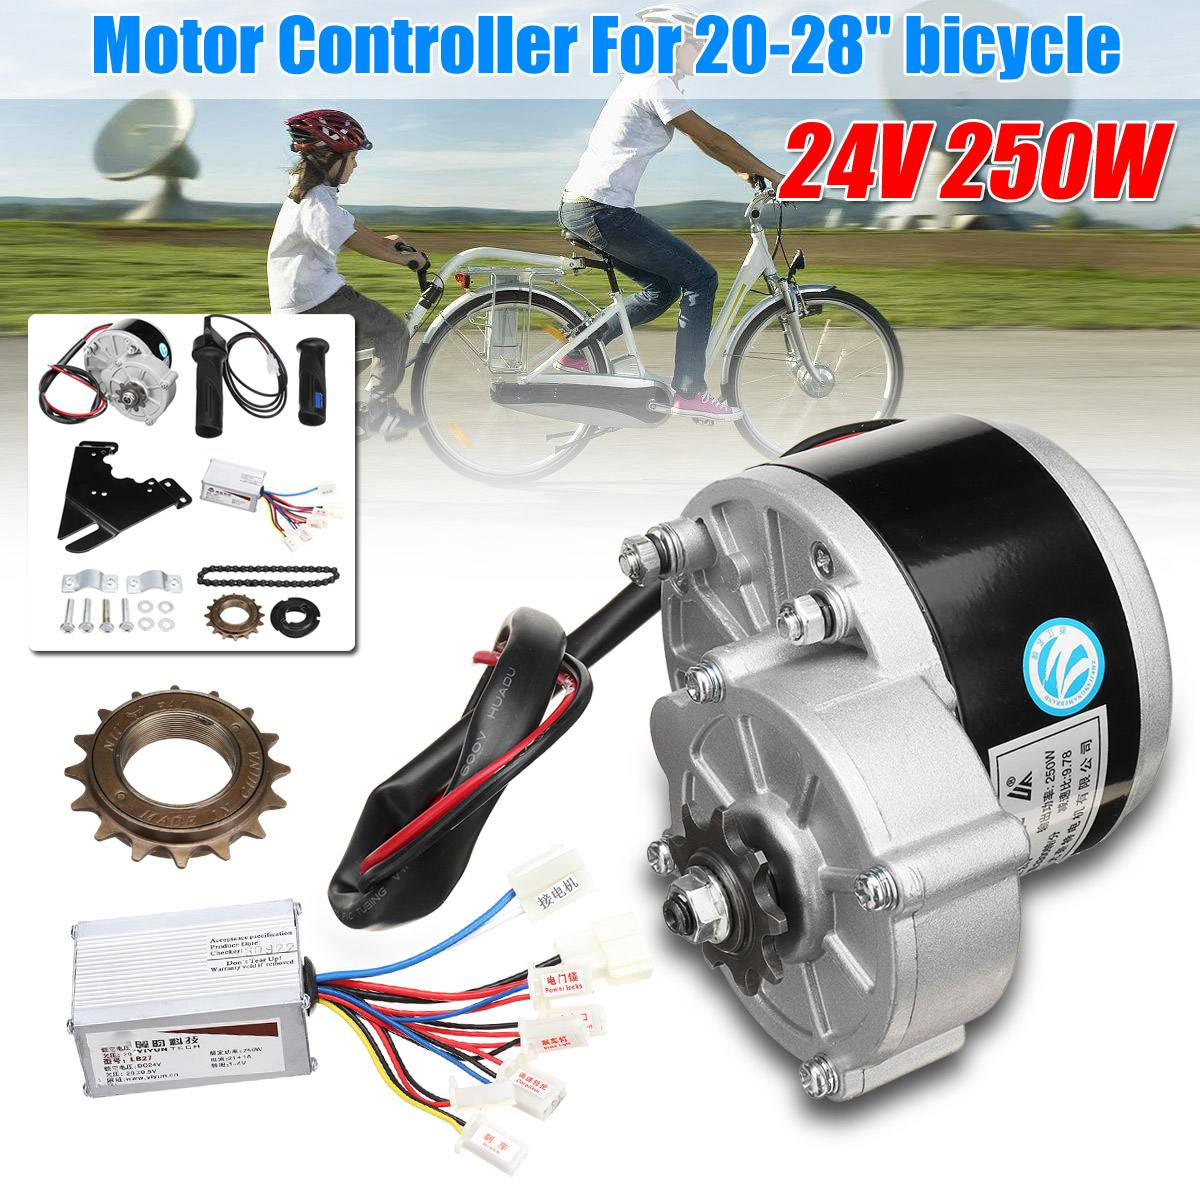 24V 250W Motor Controller Electric Bike Conversion Kit Flywheel Handle Motor Bracket Chain For 20-28 inch e-bike Bicycle kit turbine